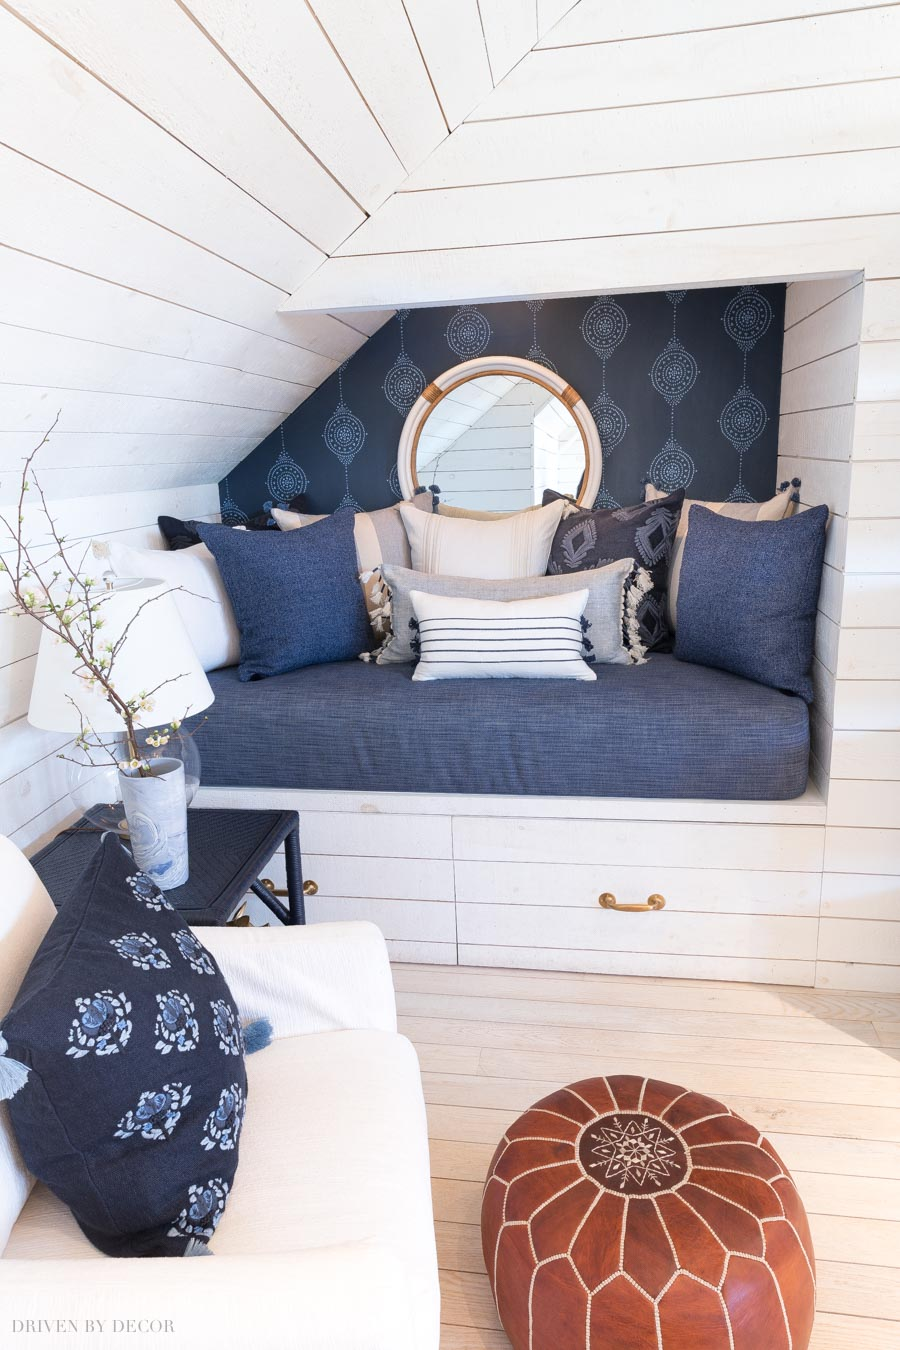 Gorgeous blue on blue wallpaper in this super cozy bed nook!